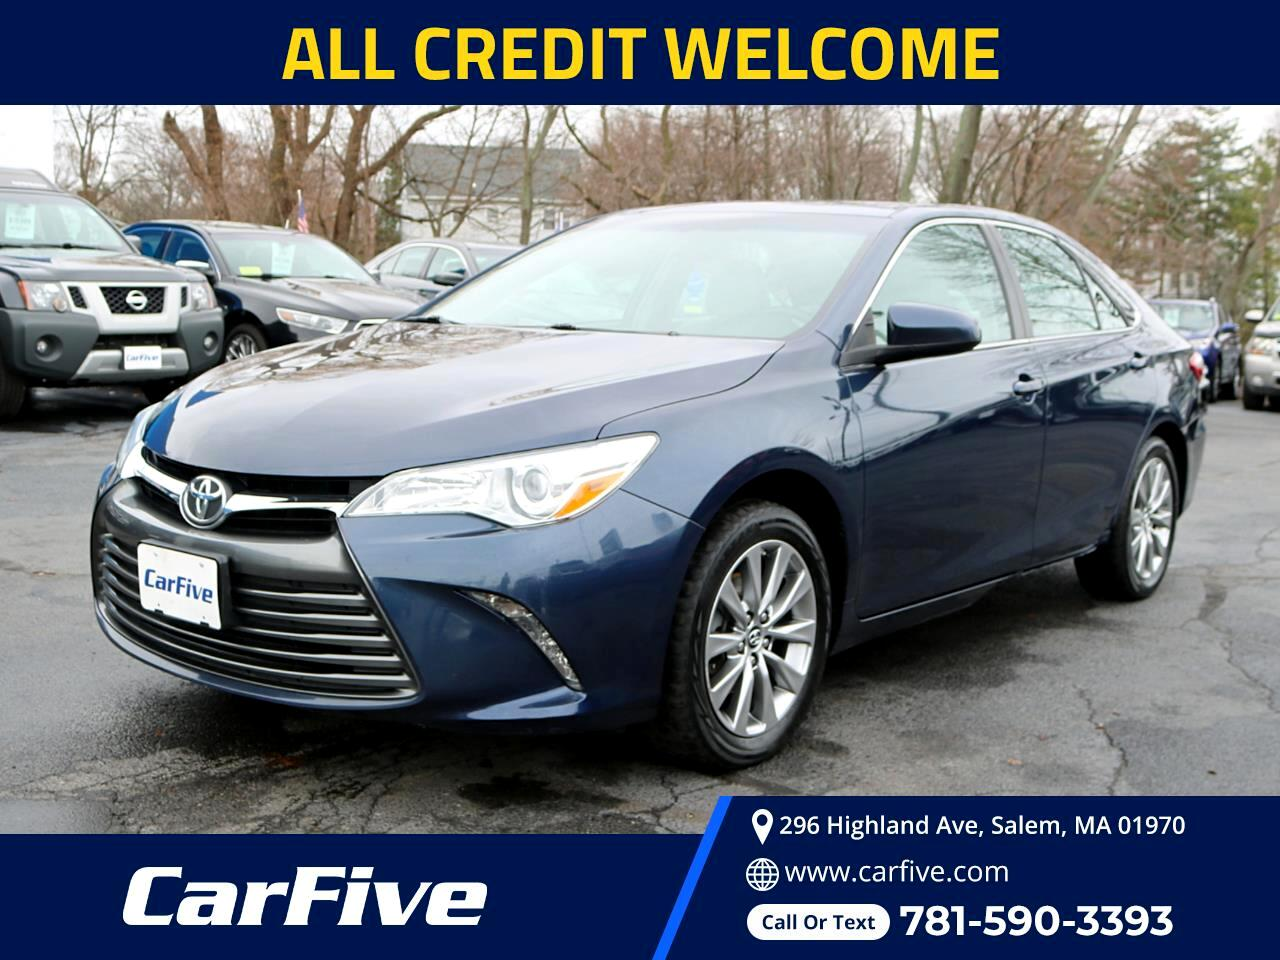 Toyota Camry 4dr Sdn I4 Auto XLE (Natl) 2016